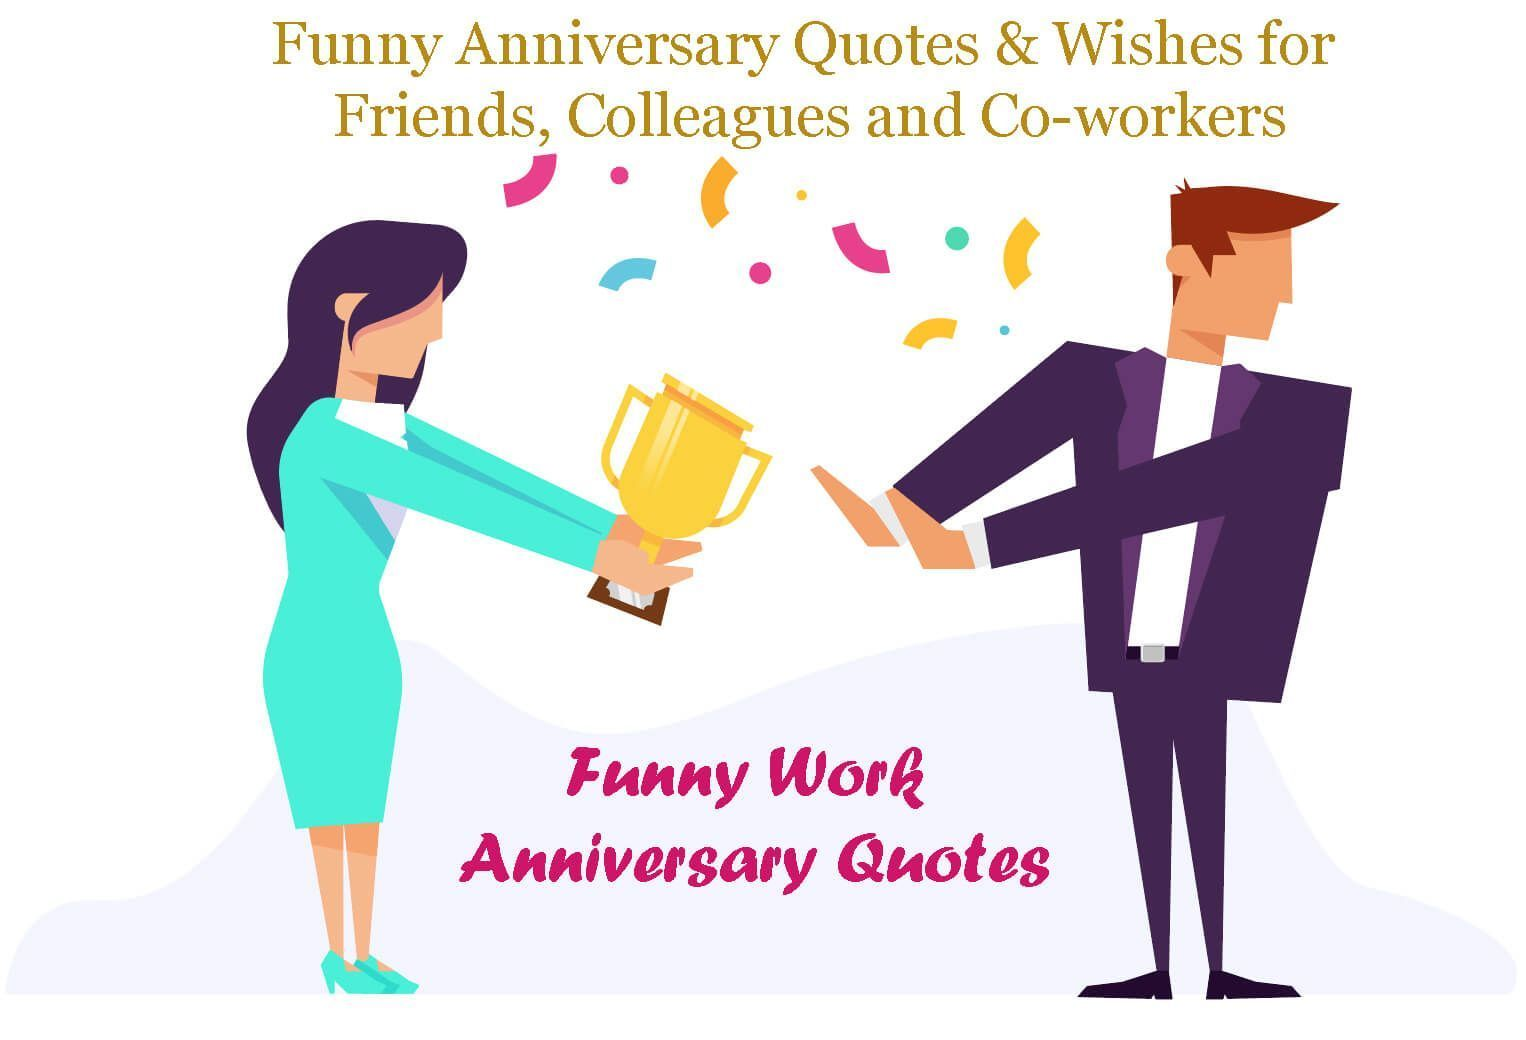 Funny Work Anniversary Quotes Anniversary Funny Quotes Work Anniversary Funny Quotes Quotesan Work Anniversary Quotes Work Anniversary Anniversary Quotes